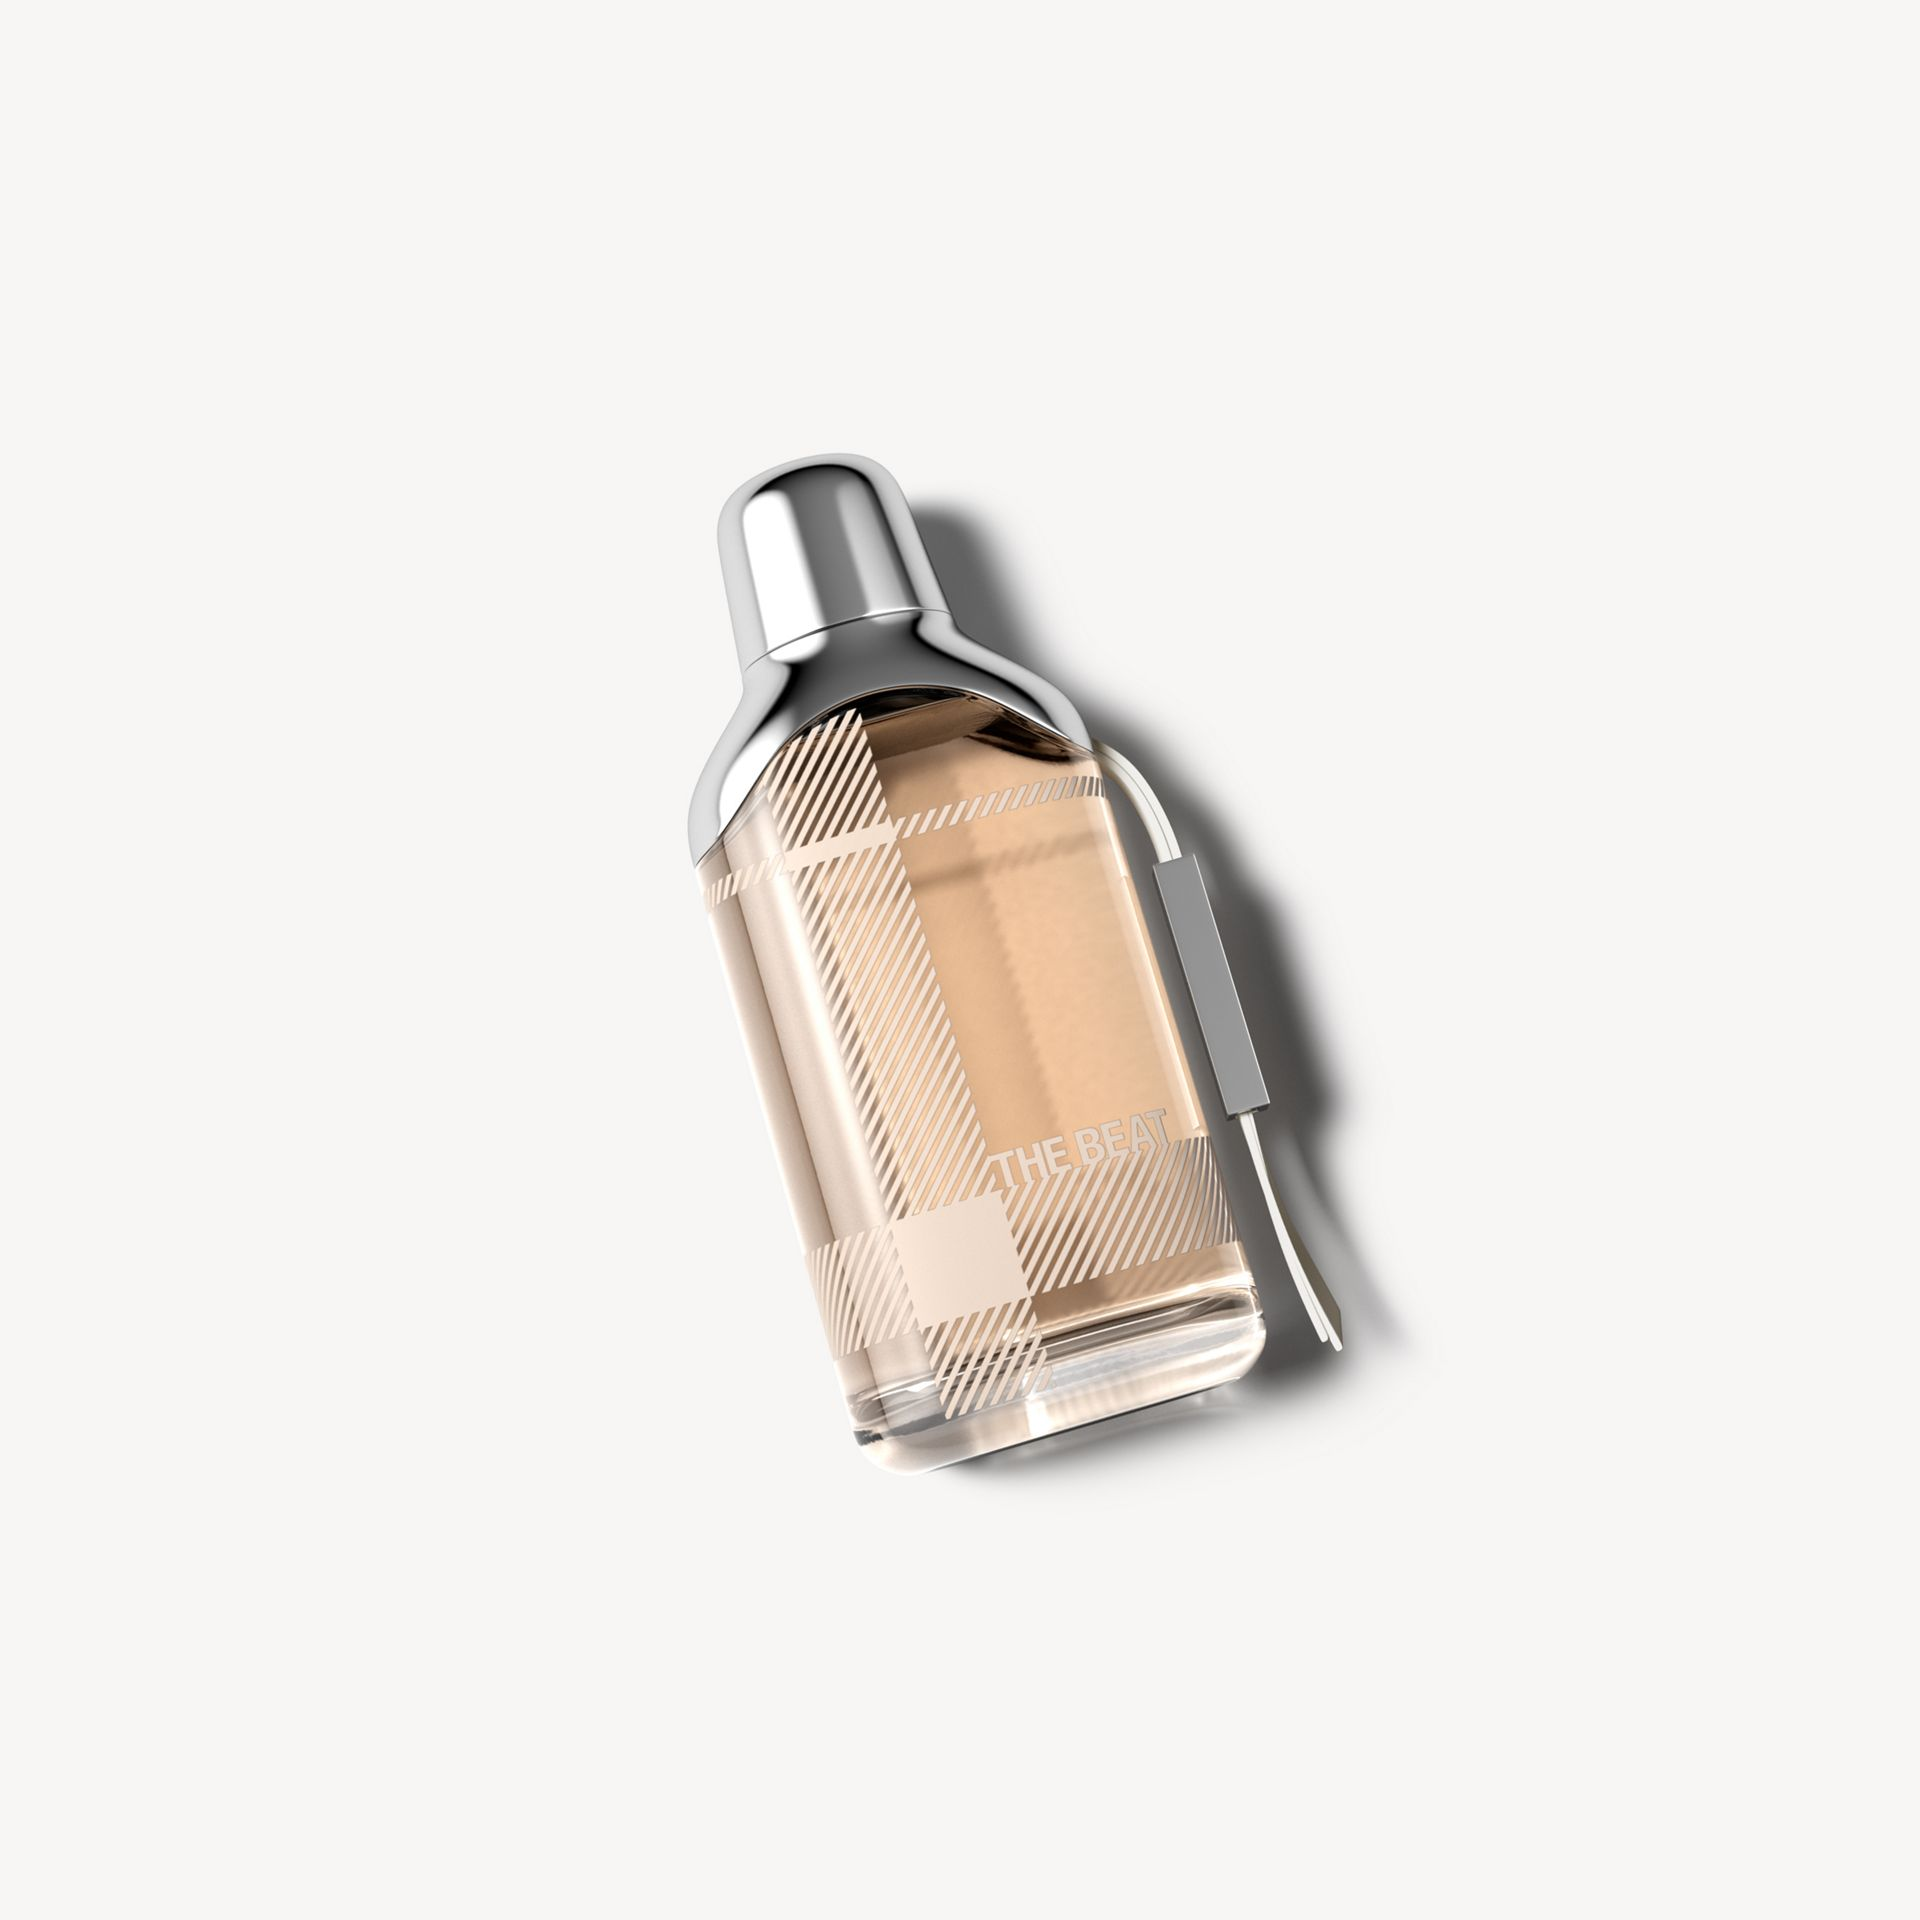 Burberry The Beat Eau de Parfum 50 ml - Donna | Burberry - immagine della galleria 0